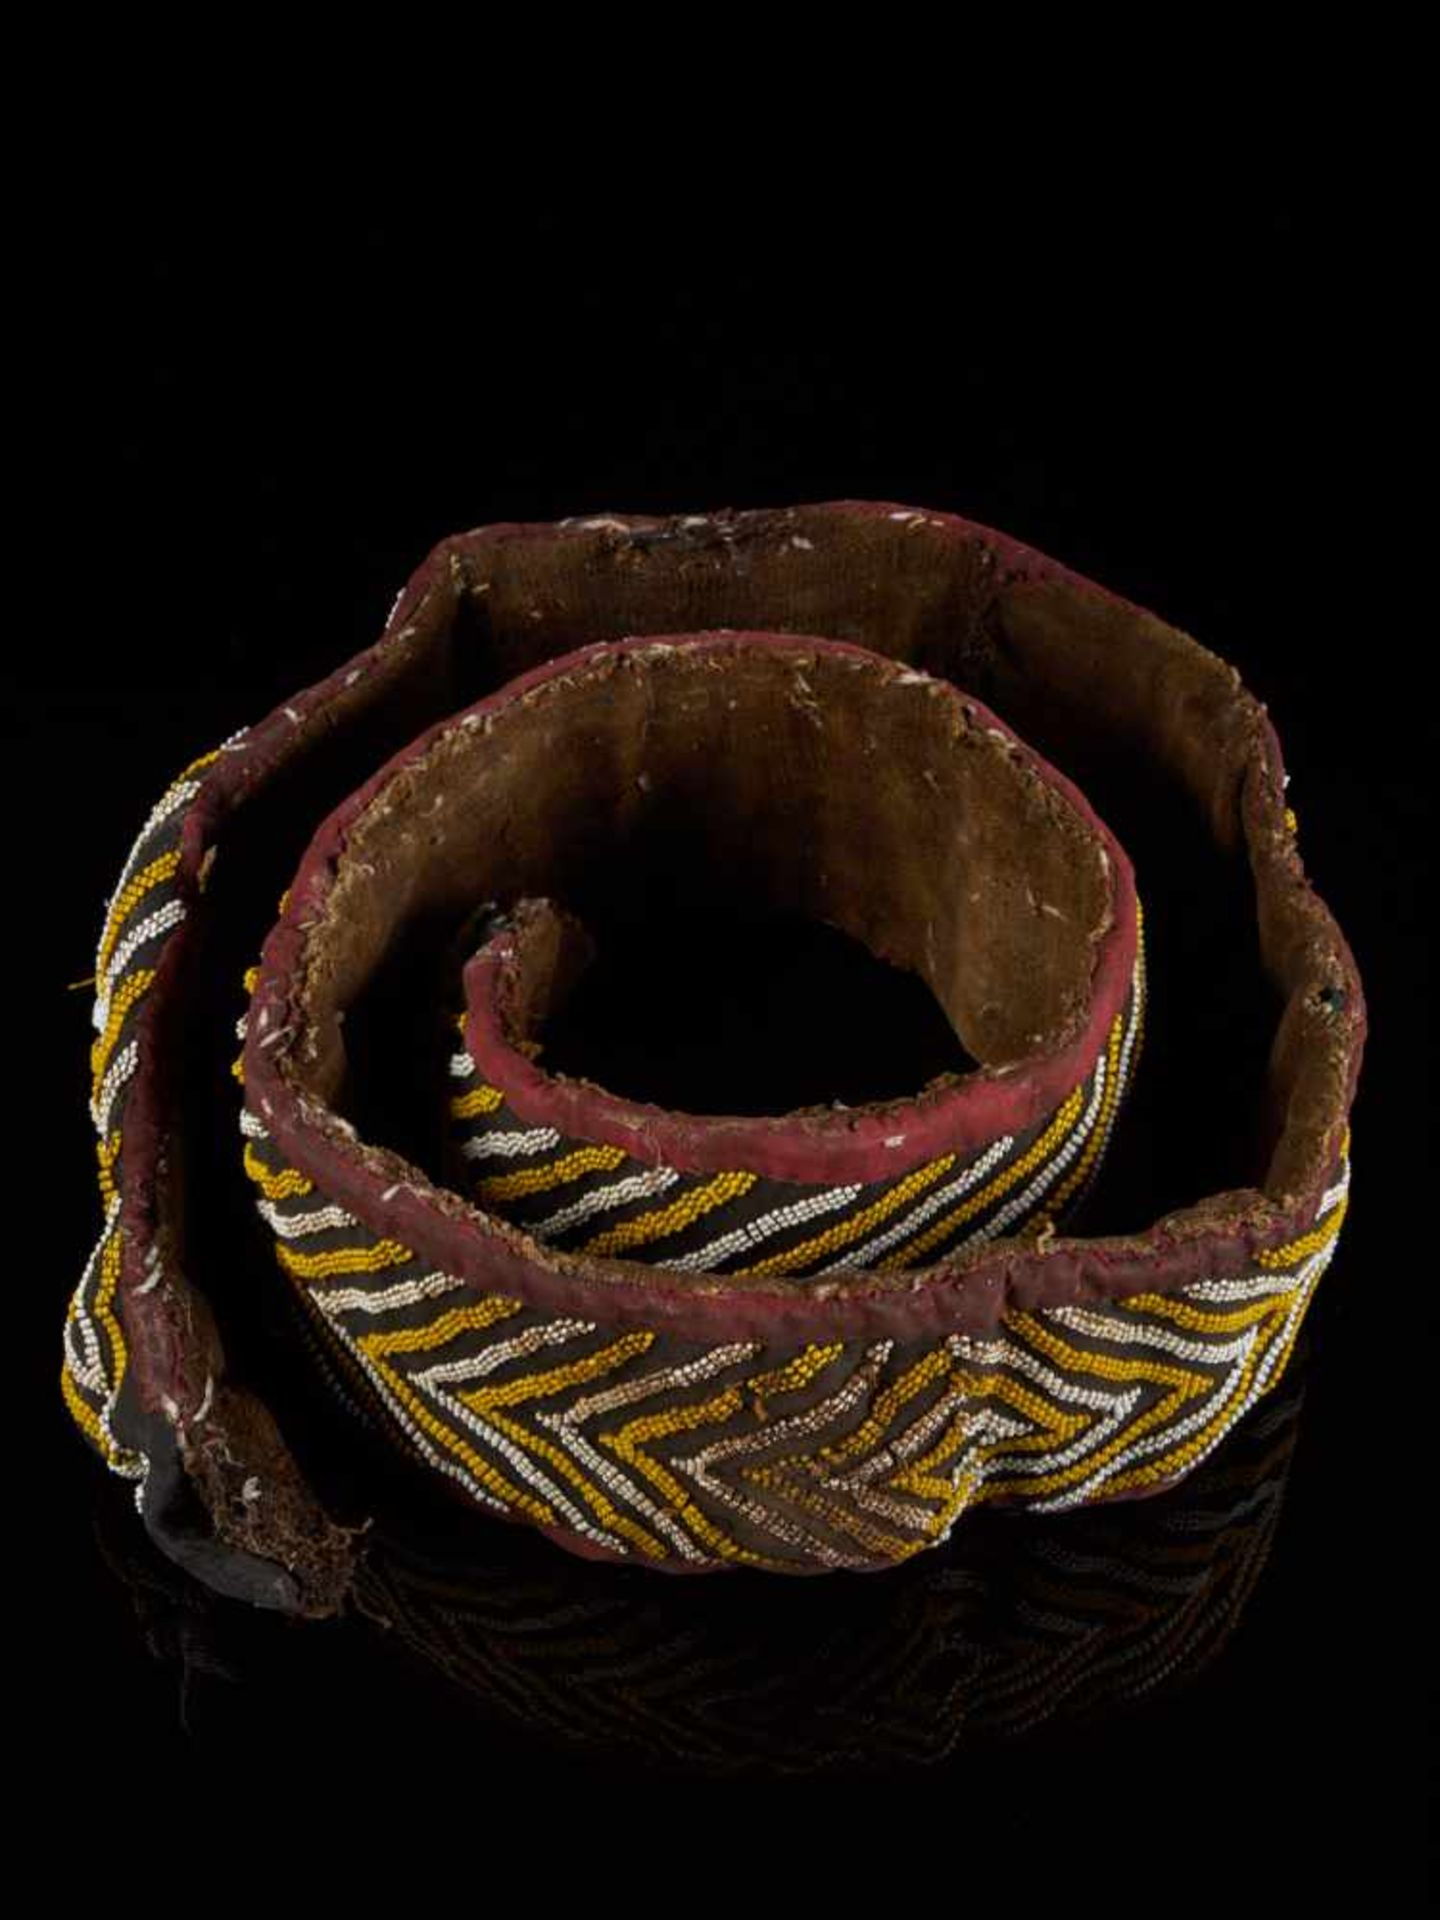 Beaded Double Headed Snake Belt - Tribal ArtThe double headed snake is the symbol of the Bamum - Bild 3 aus 5